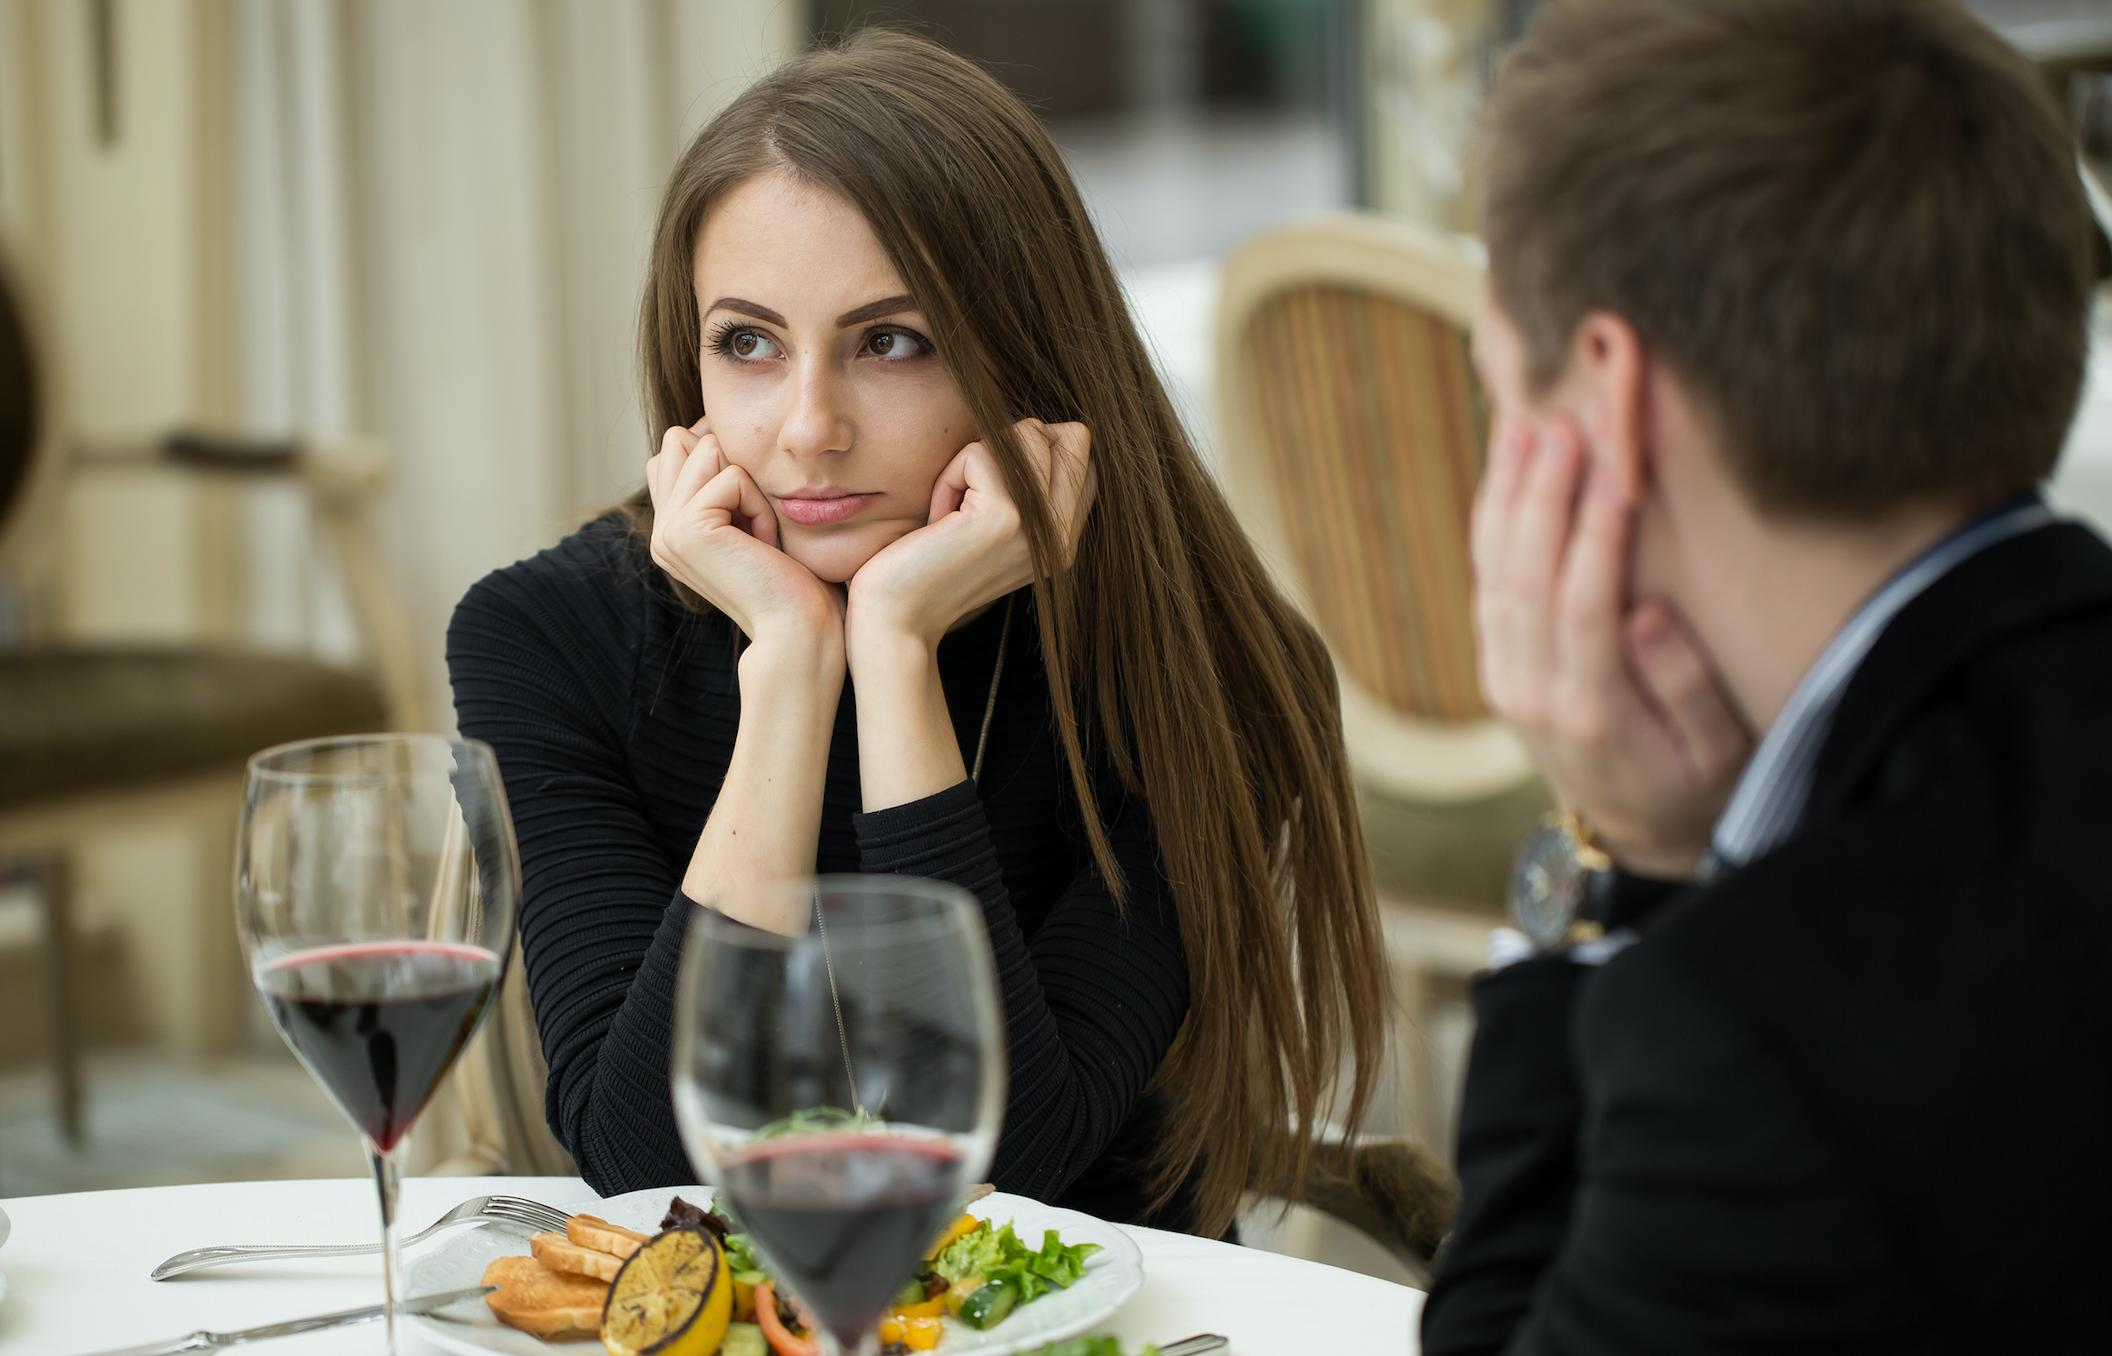 A man and woman eat together looking sad